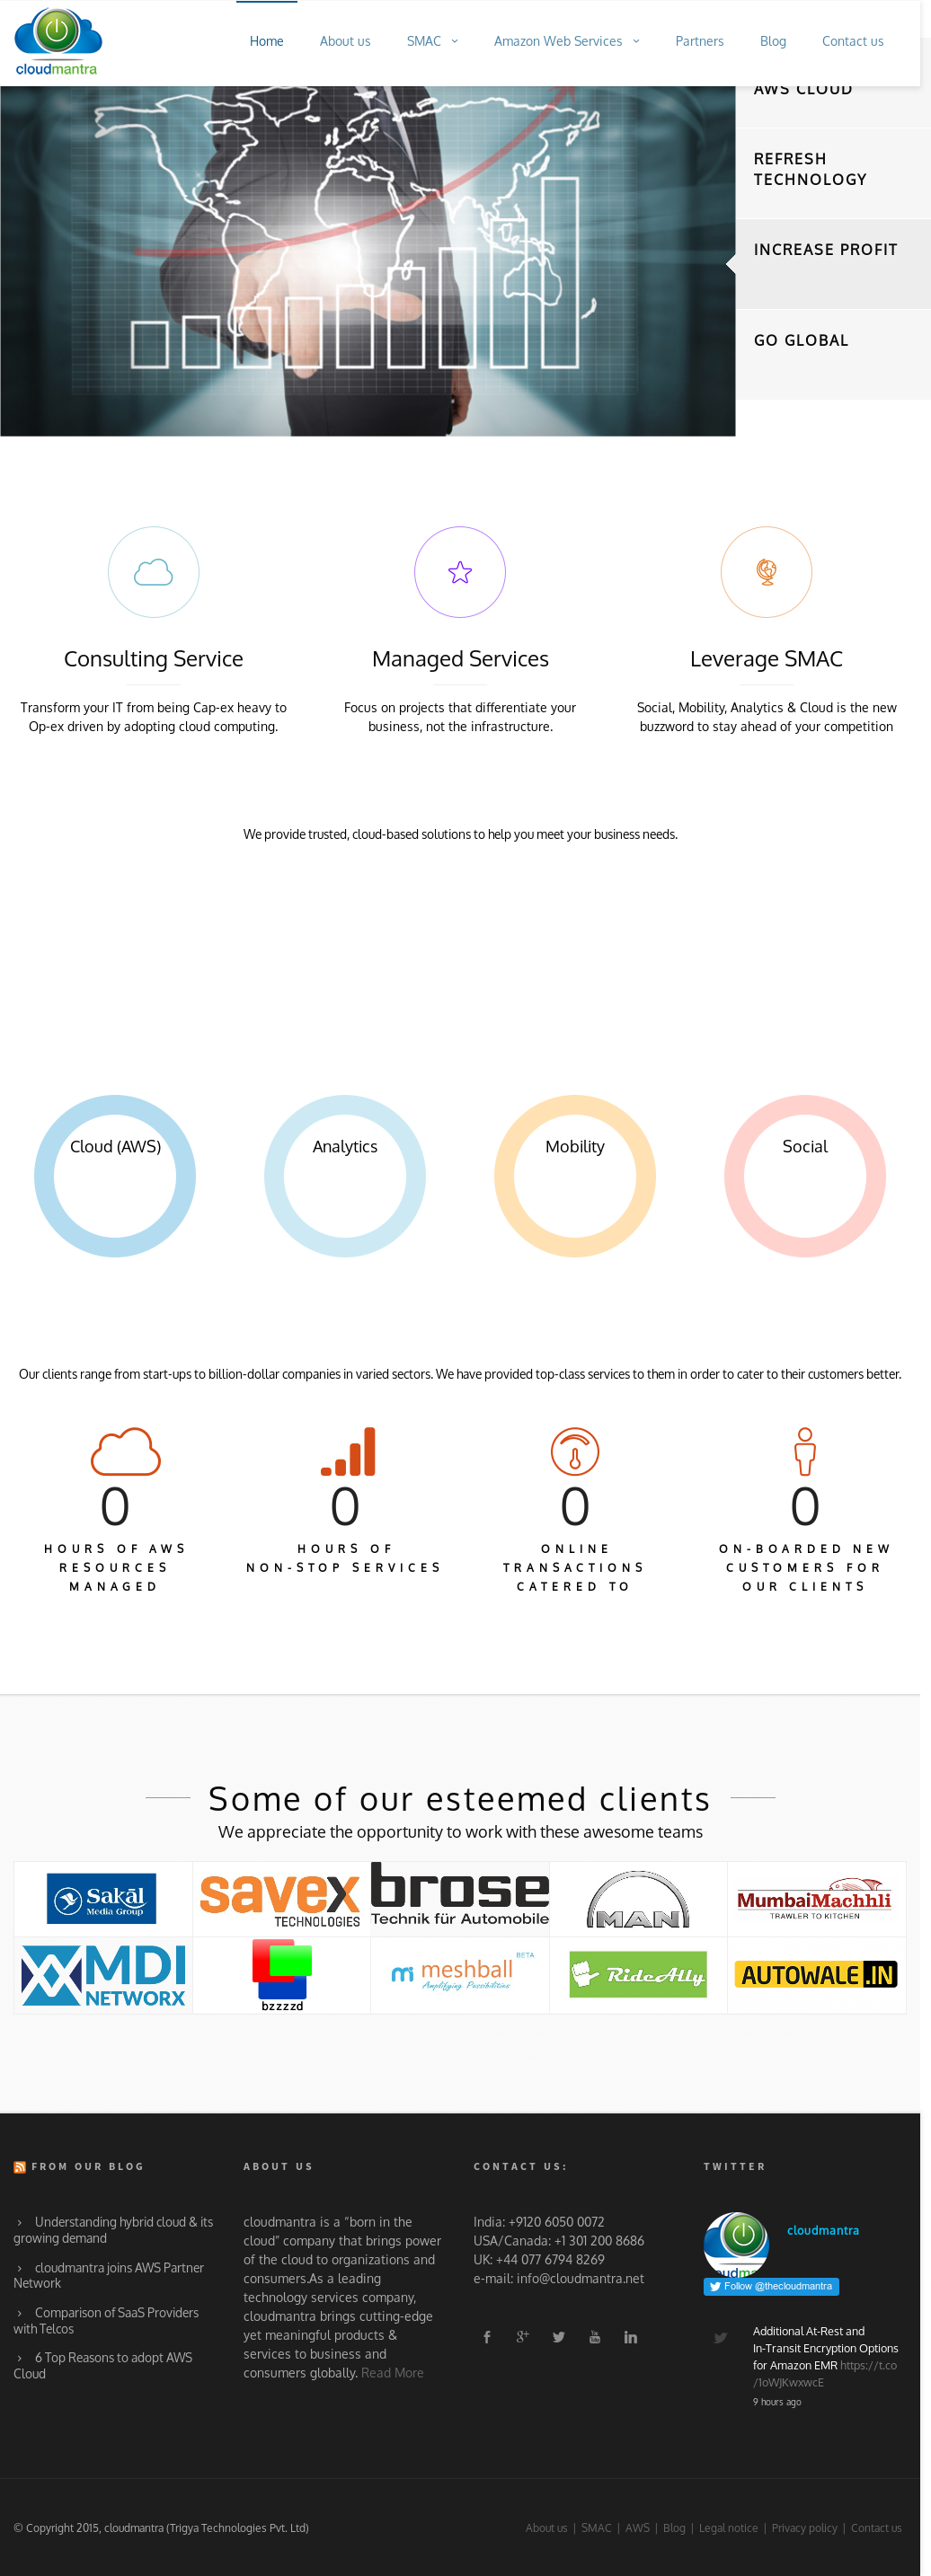 Cloudmantra Competitors, Revenue and Employees - Owler Company Profile